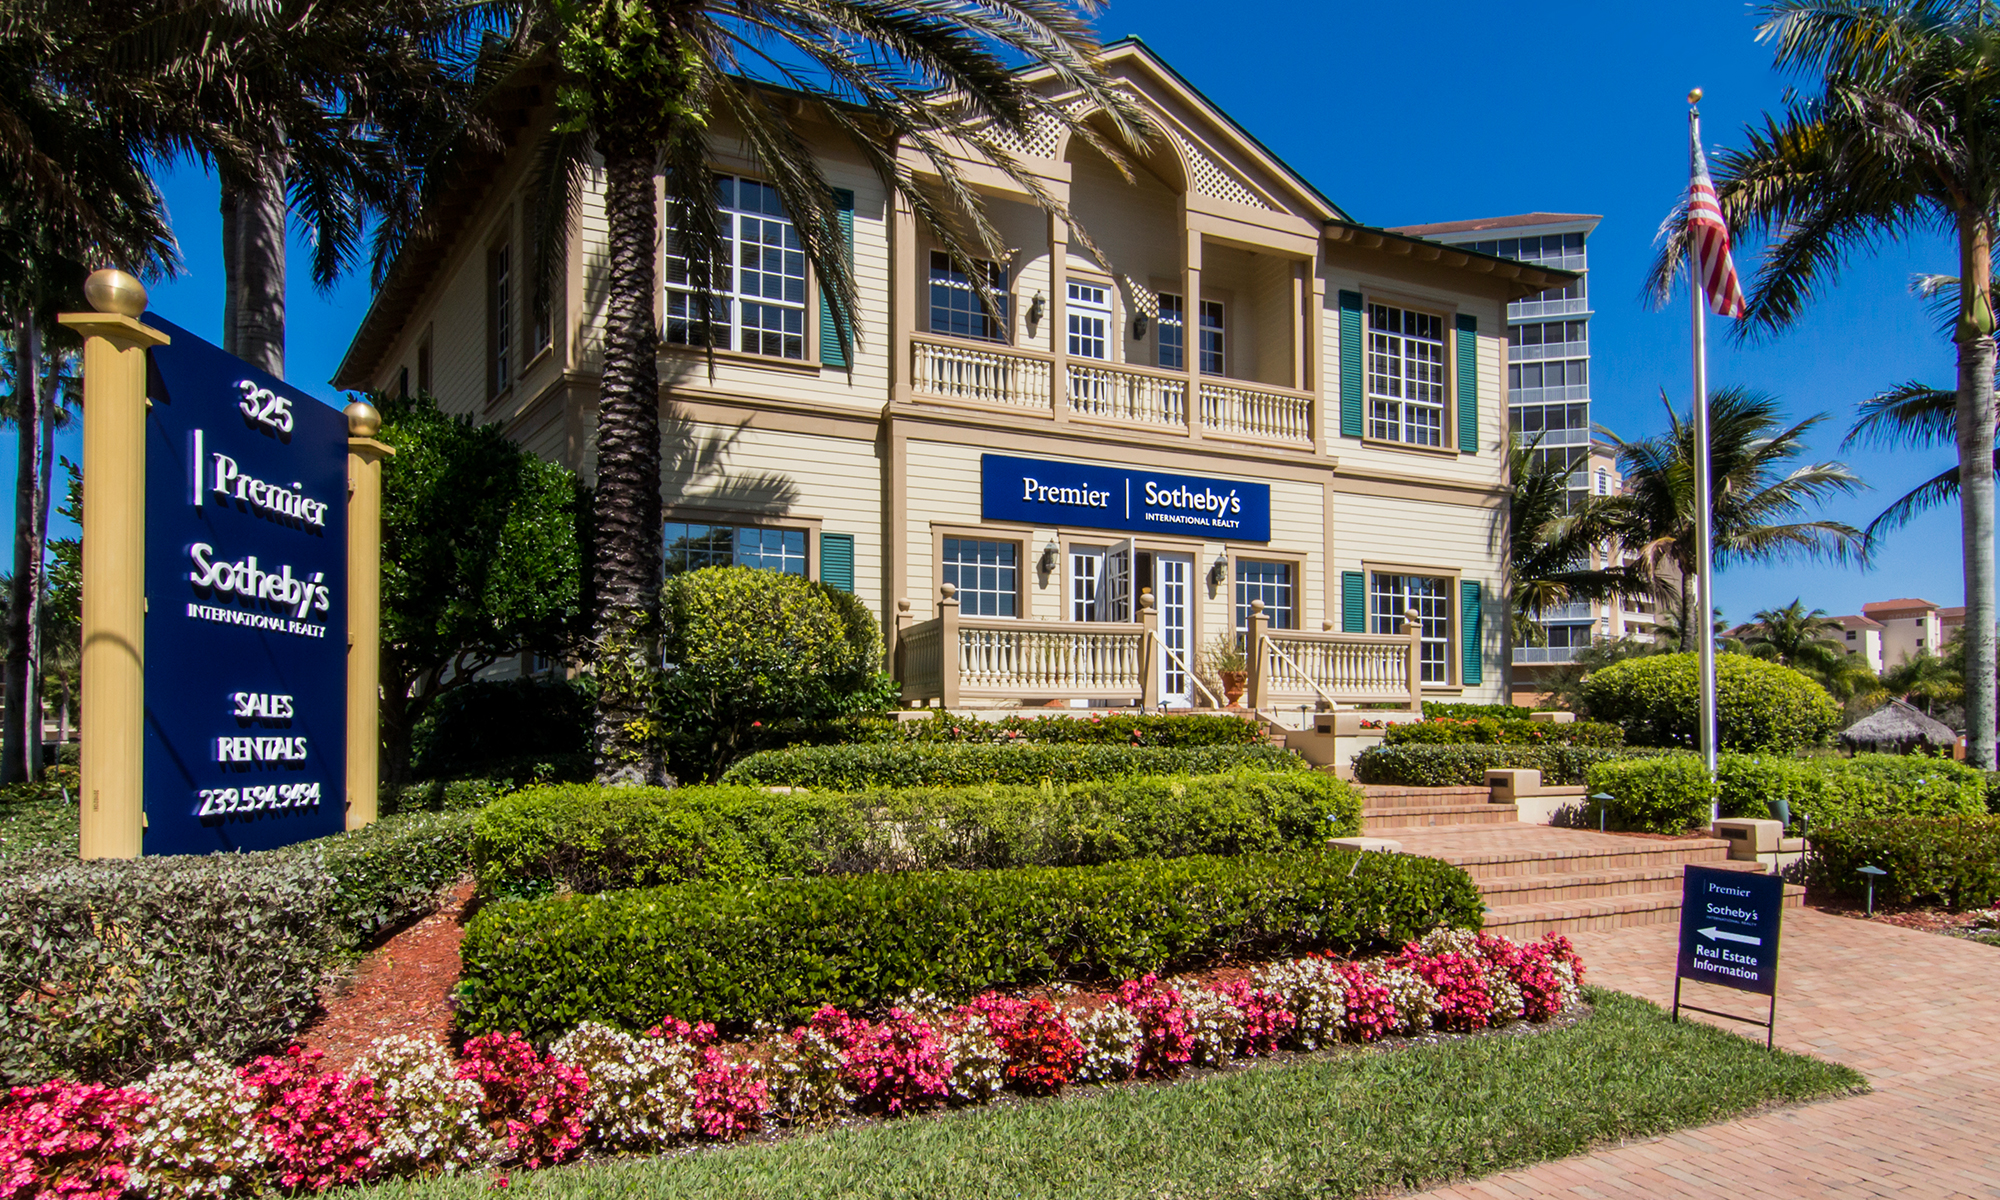 Premier Sotheby's International Realty Vanderbilt